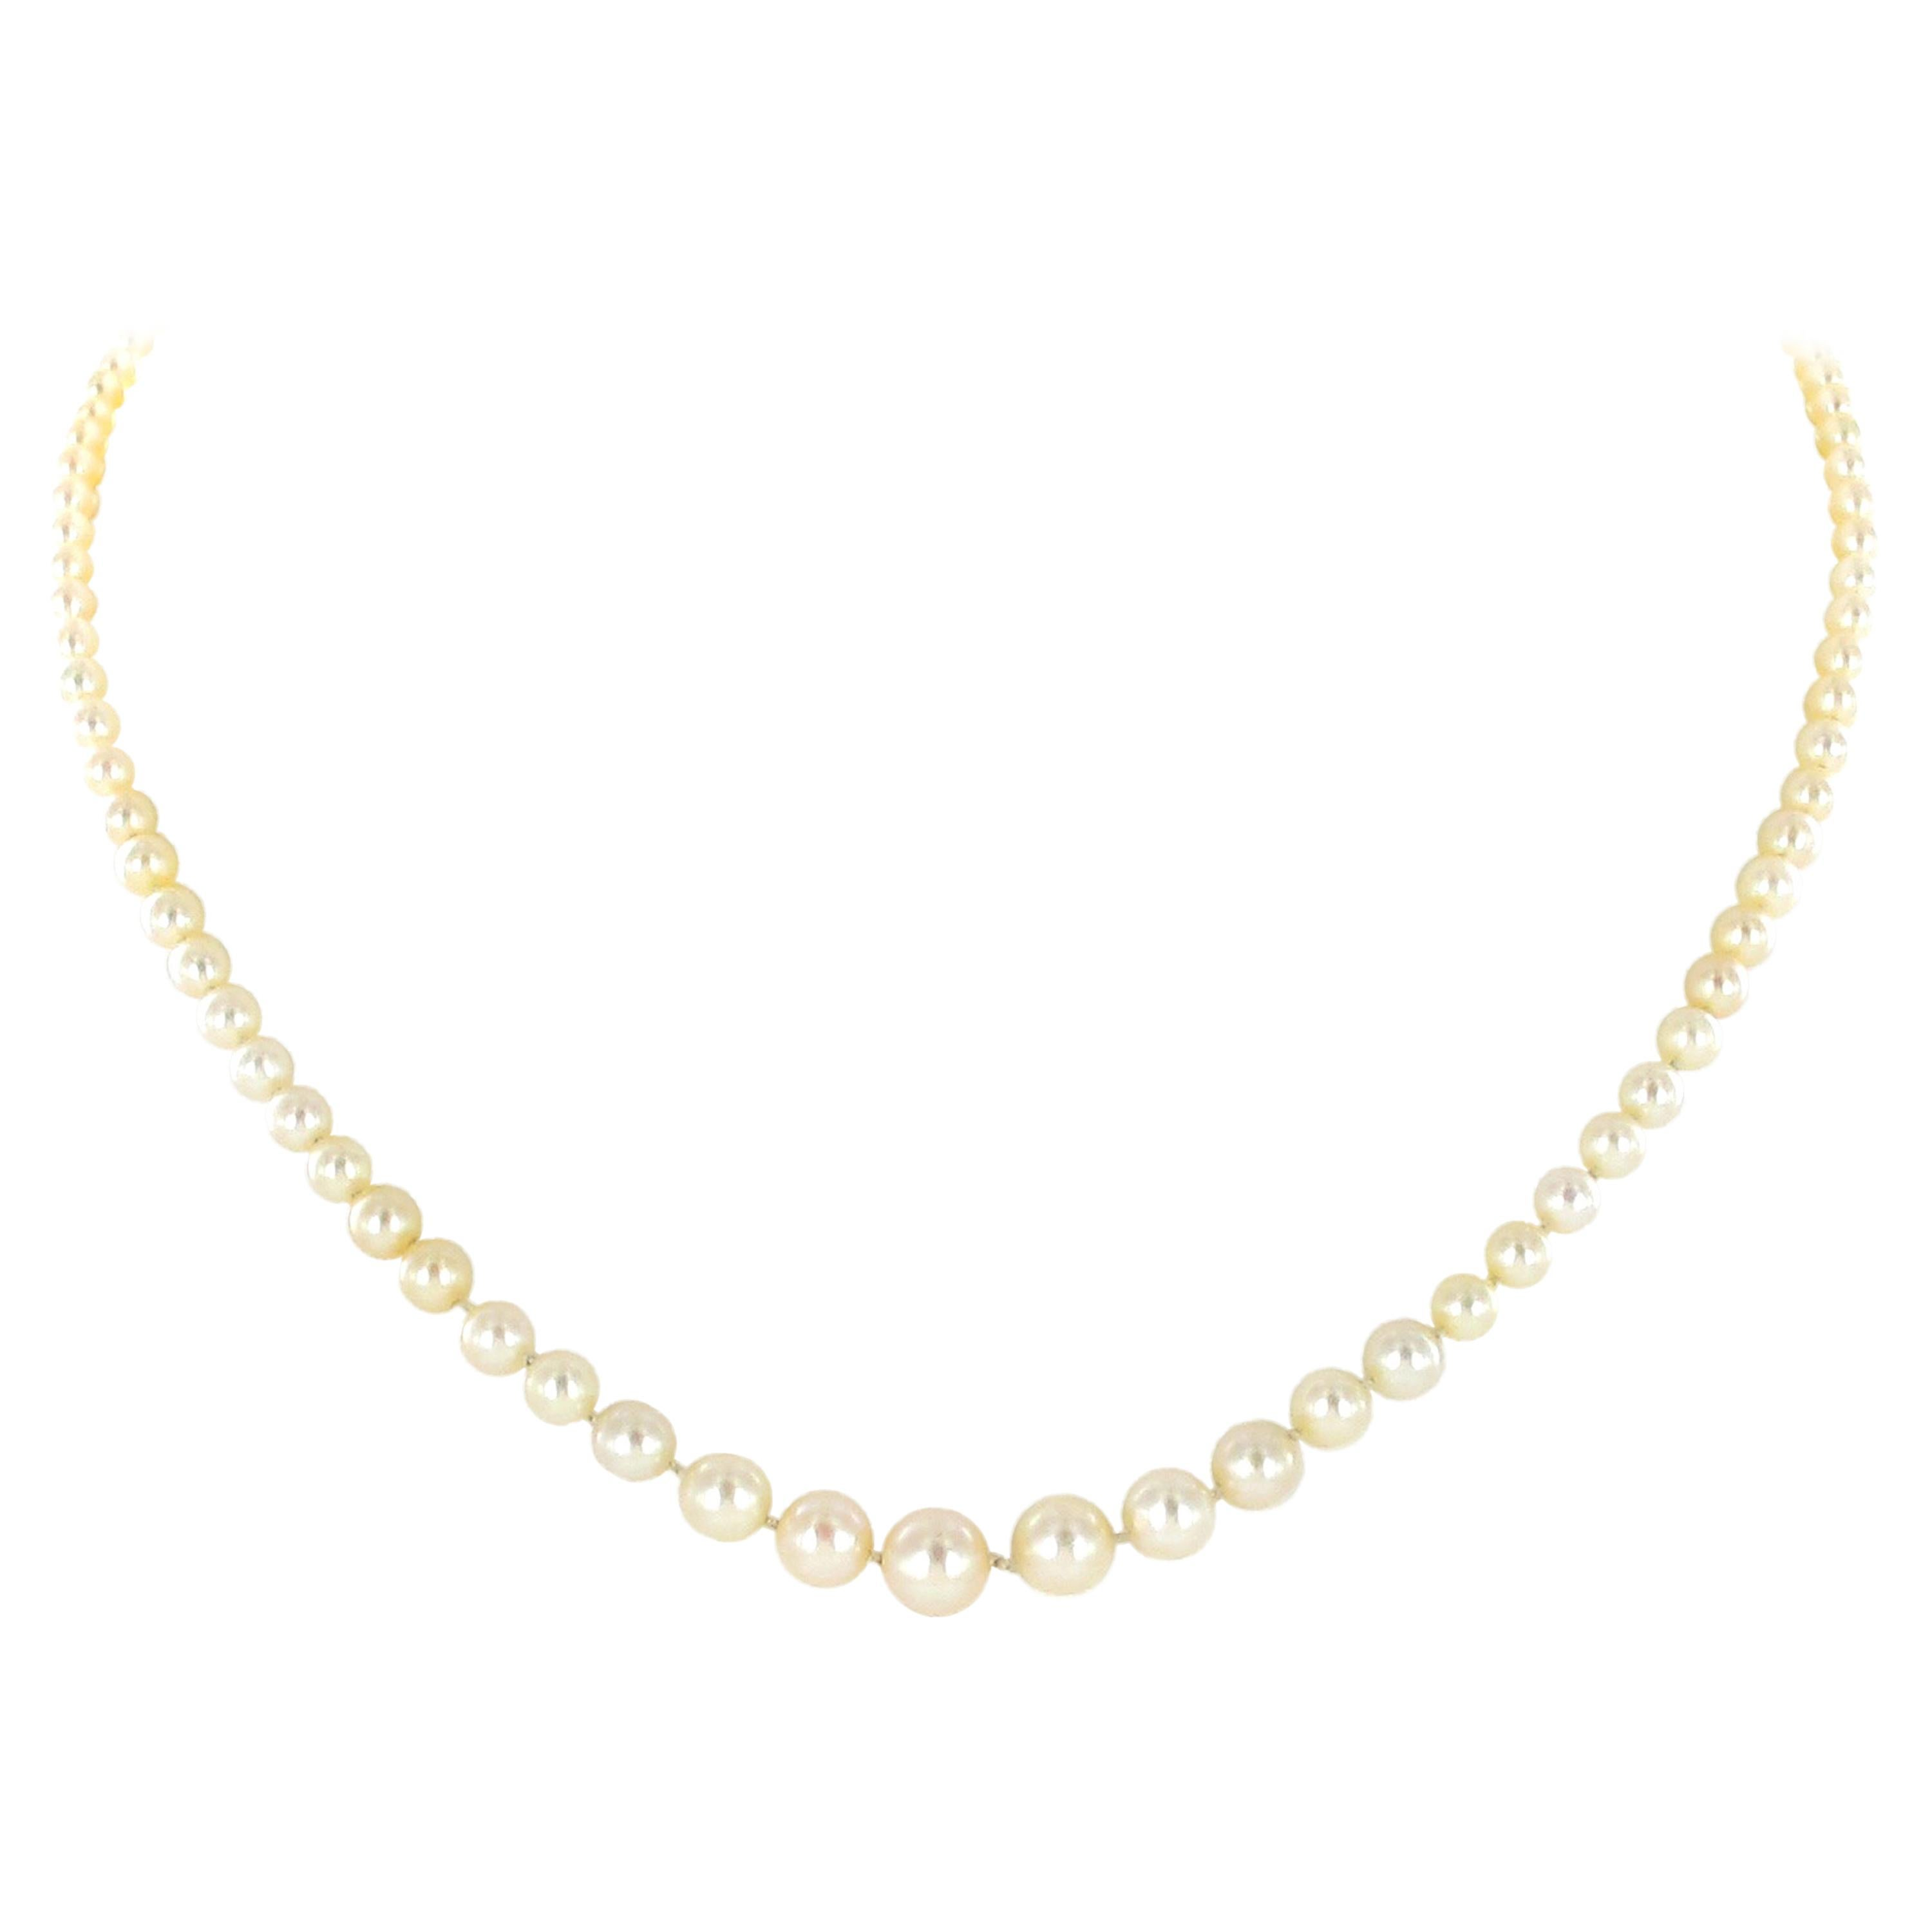 Certified Natural Salt Water Pearl Necklace